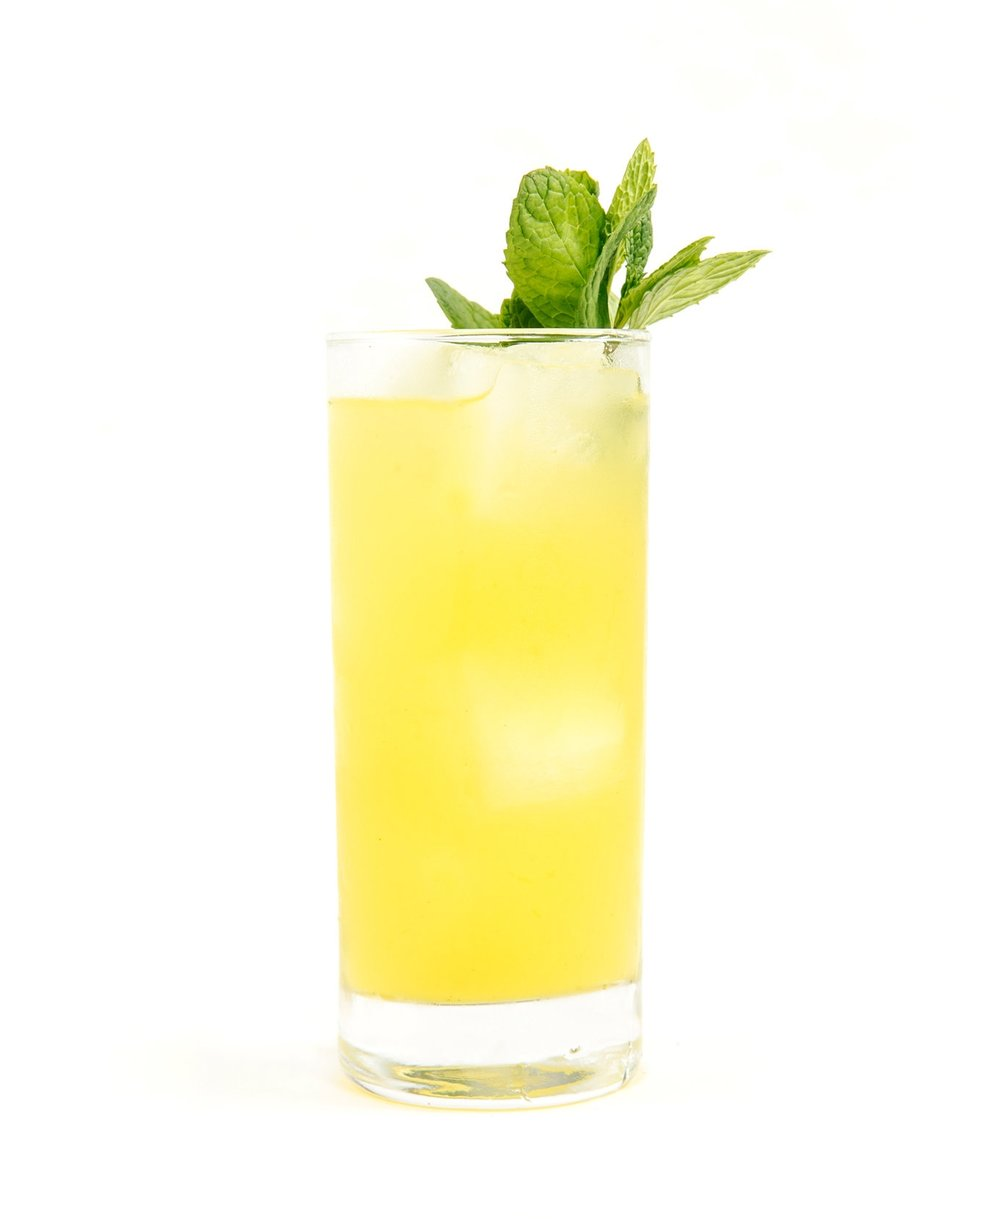 SPRING FLING - 2 oz gin or vodka1/2 oz nostrum pineapple turmeric ginger shrub1/2 oz fresh lime juice2-4 oz tonic waterdirections: build over ice and top with tonic.